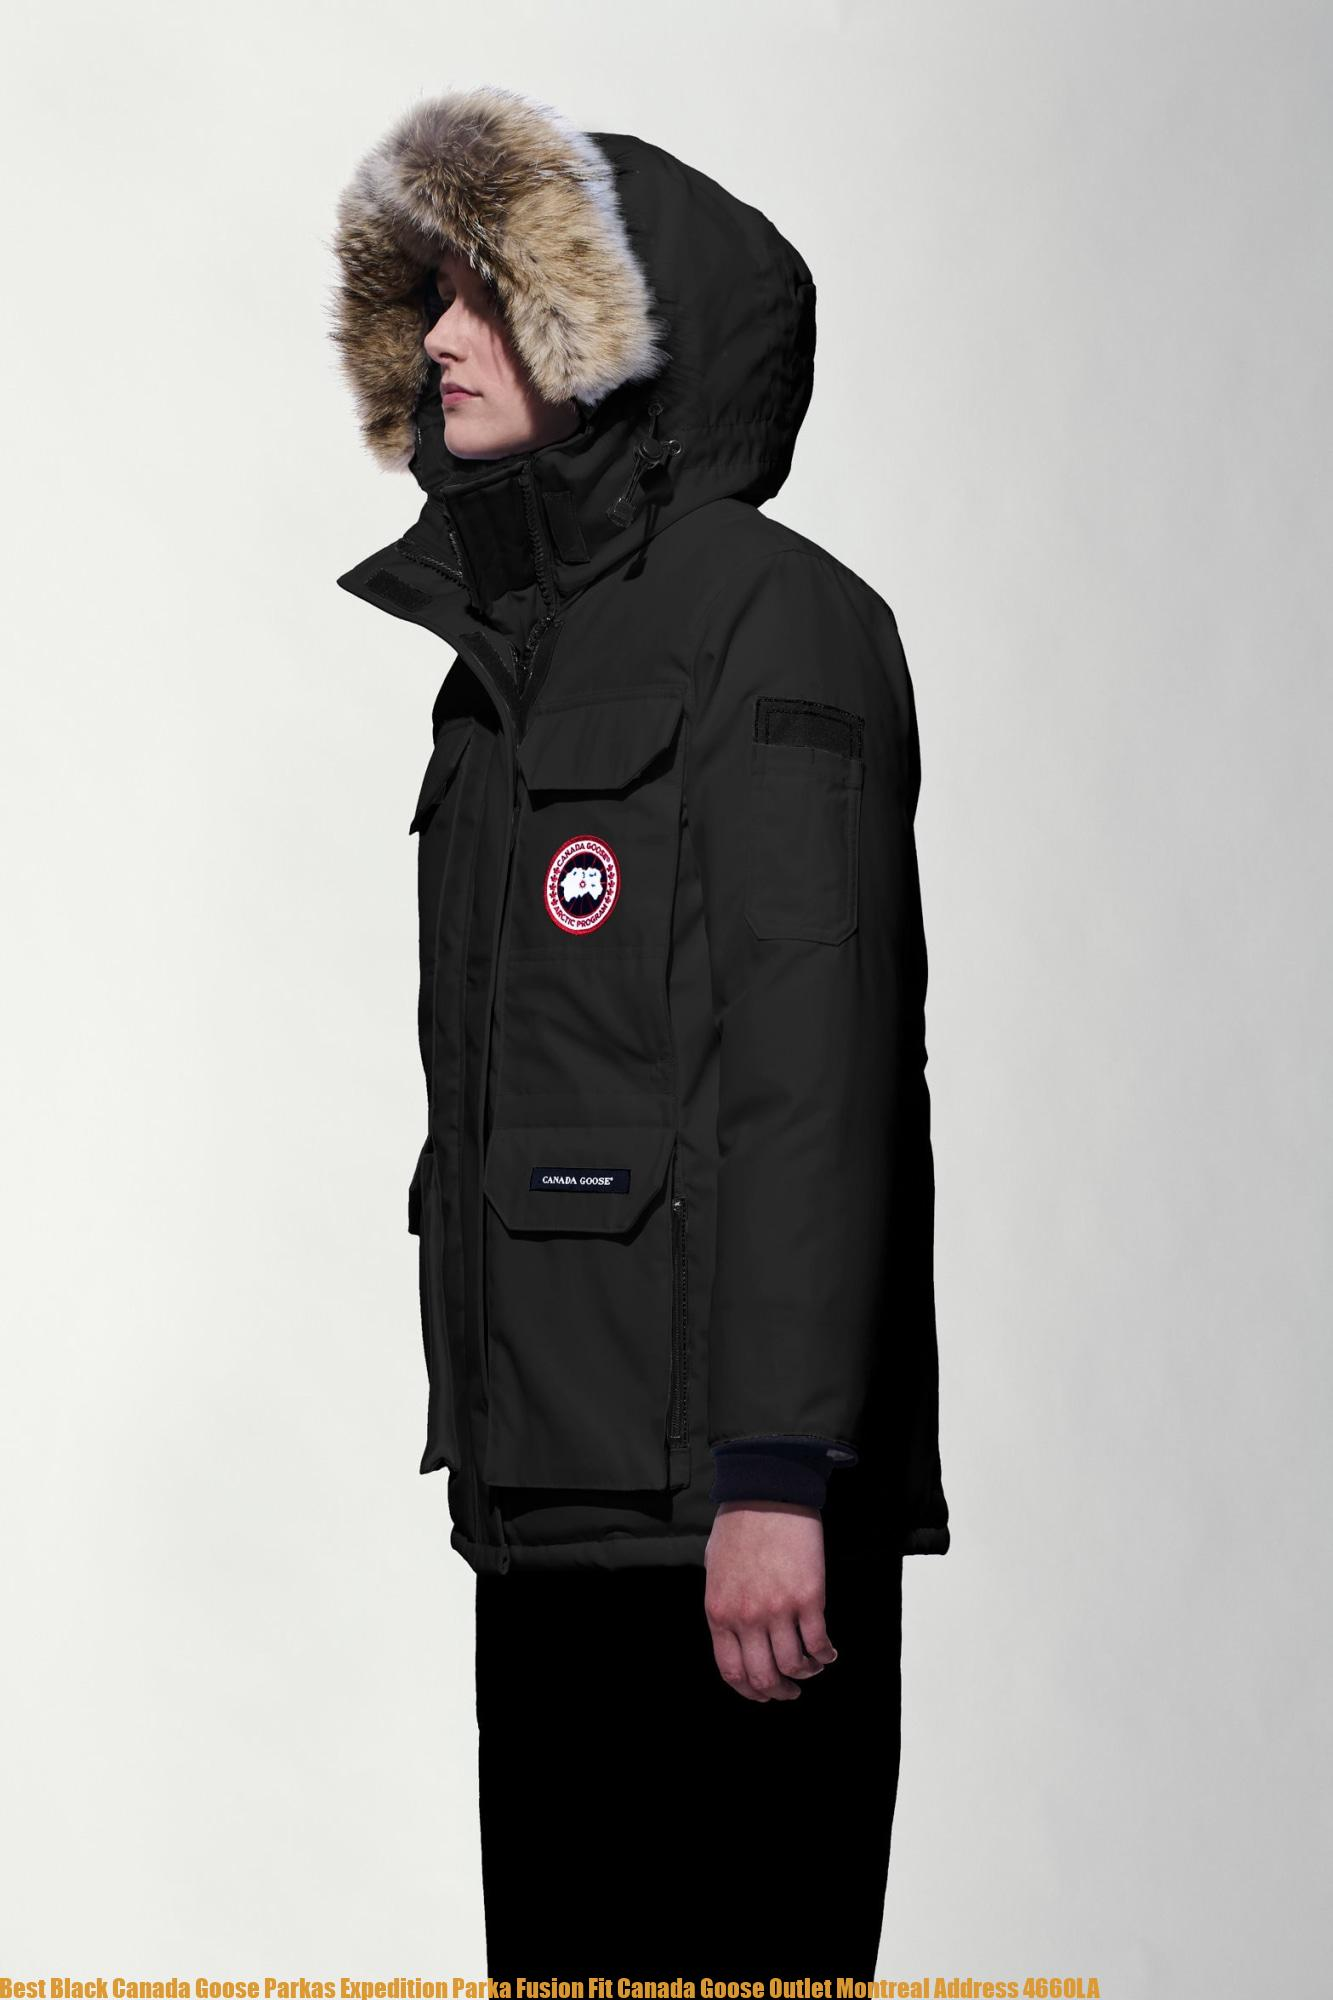 buy popular c02ad e4ce5 Best Black Canada Goose Parkas Expedition Parka Fusion Fit Canada Goose  Outlet Montreal Address 4660LA